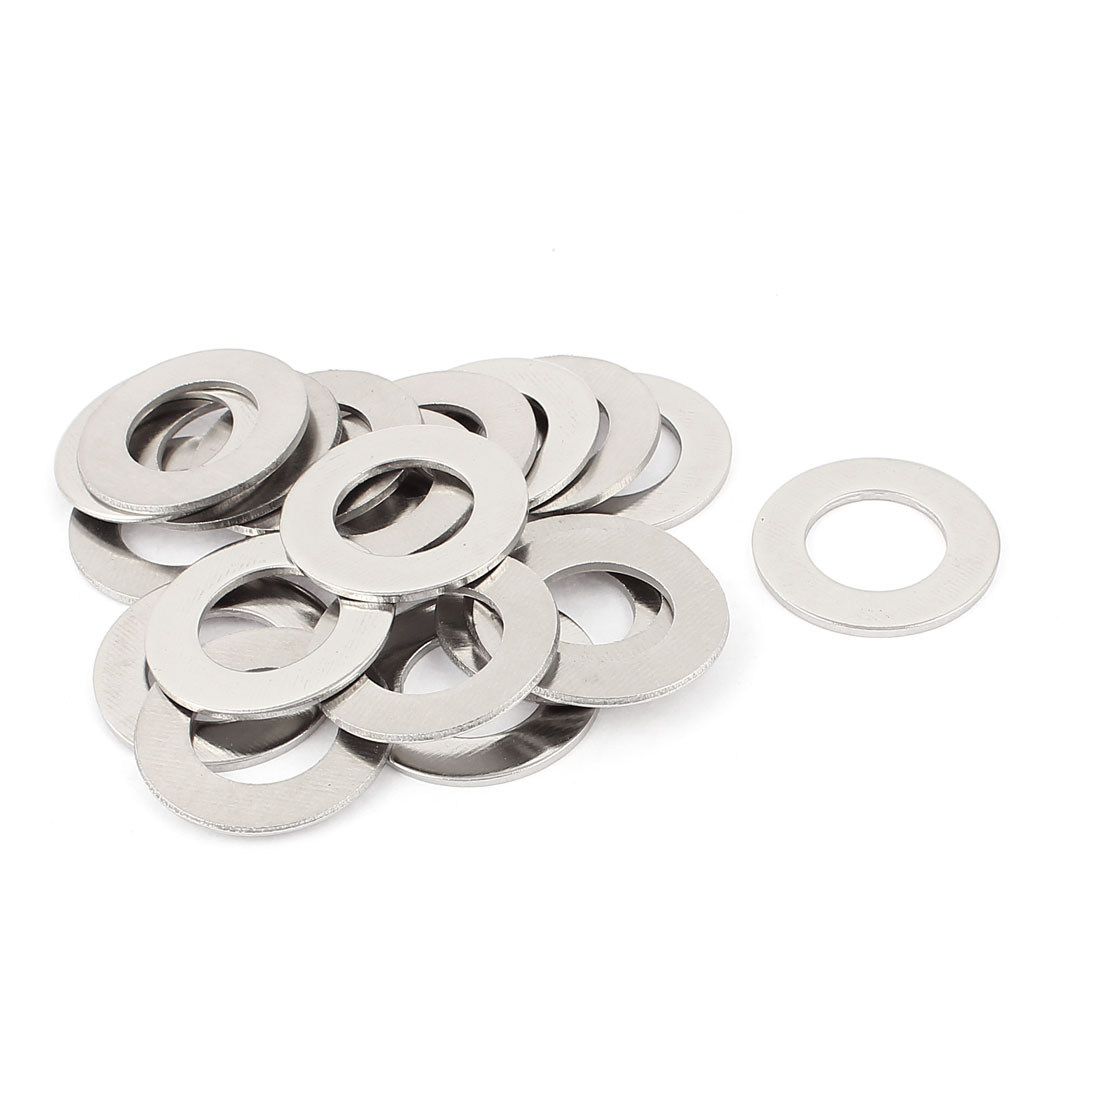 20pcs 304 Stainless Steel M20 Thin Plain Flat Washer Silver Tone